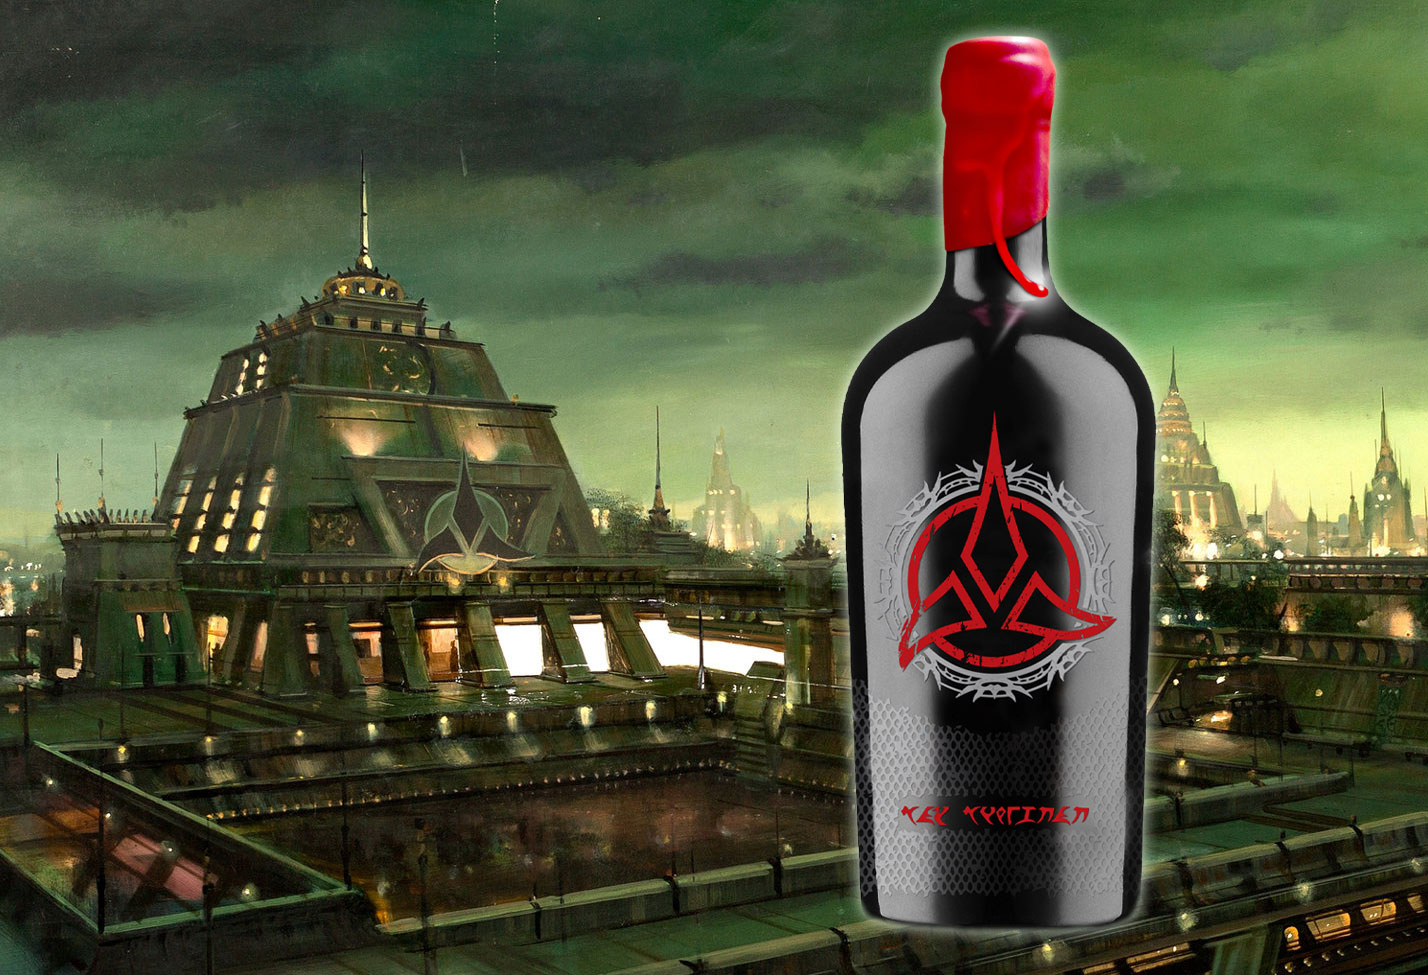 Star Trek Wines Returns With Klingon Bloodwine In 2020 Trekcore Com